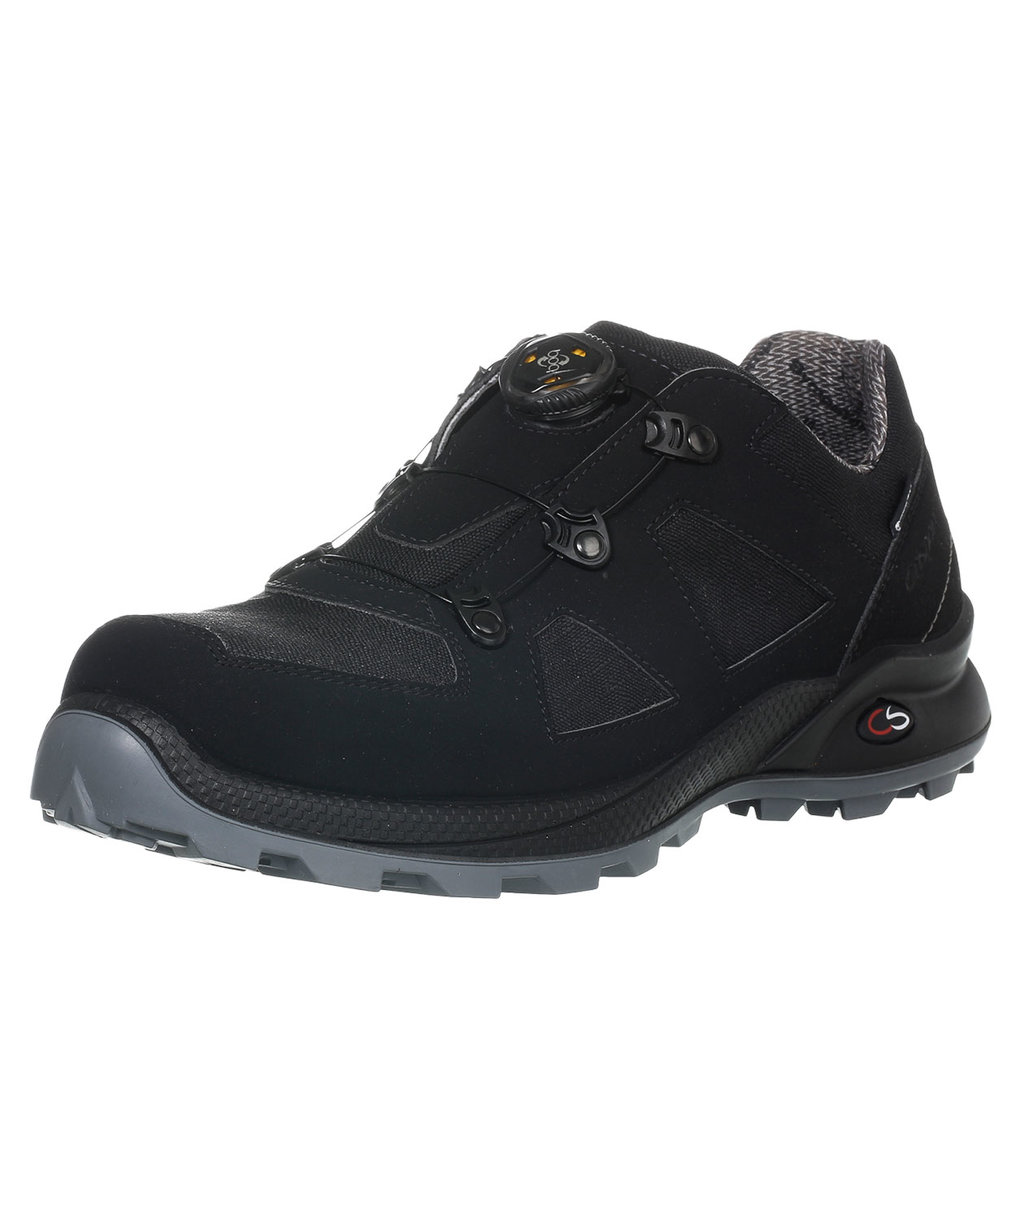 Grisport 70444 safety shoes S3, Black